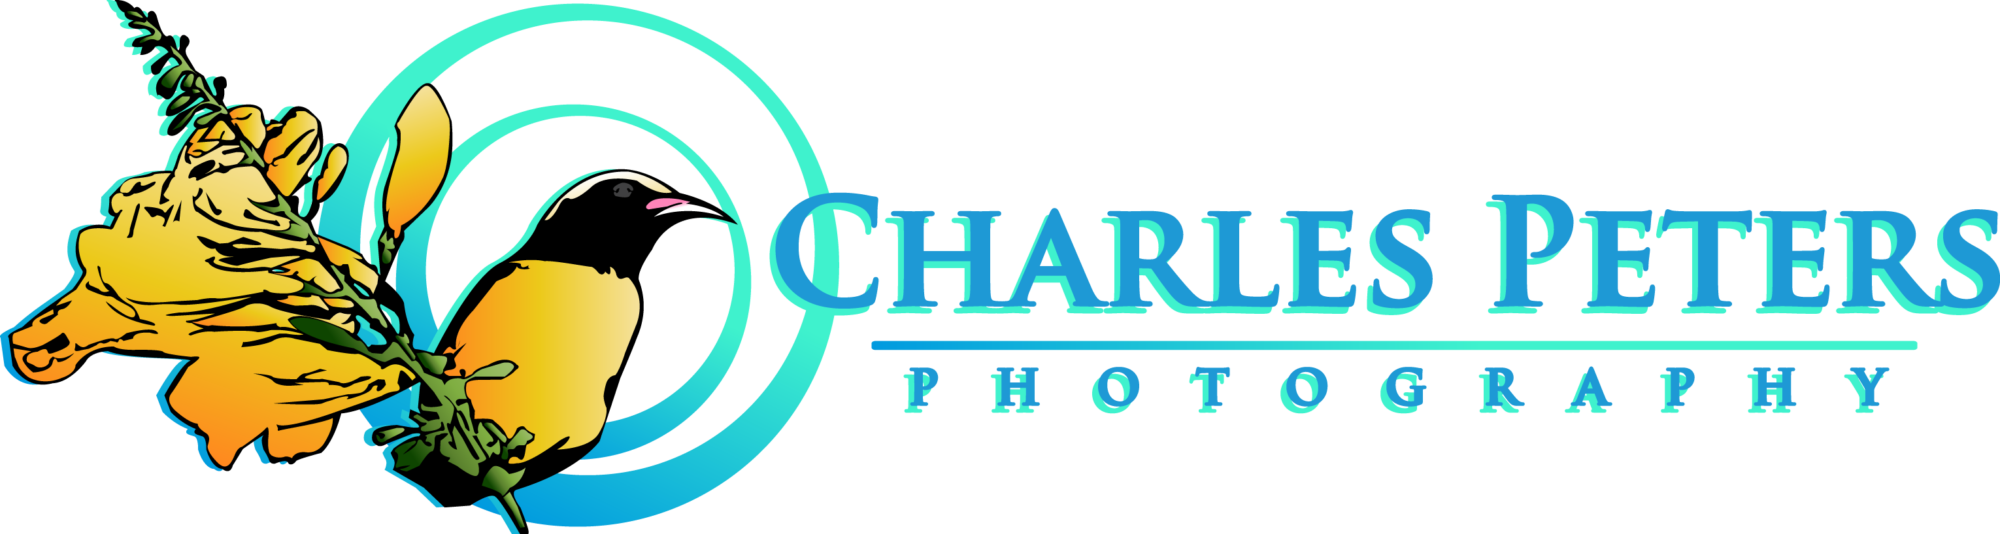 Charles Peters Photography